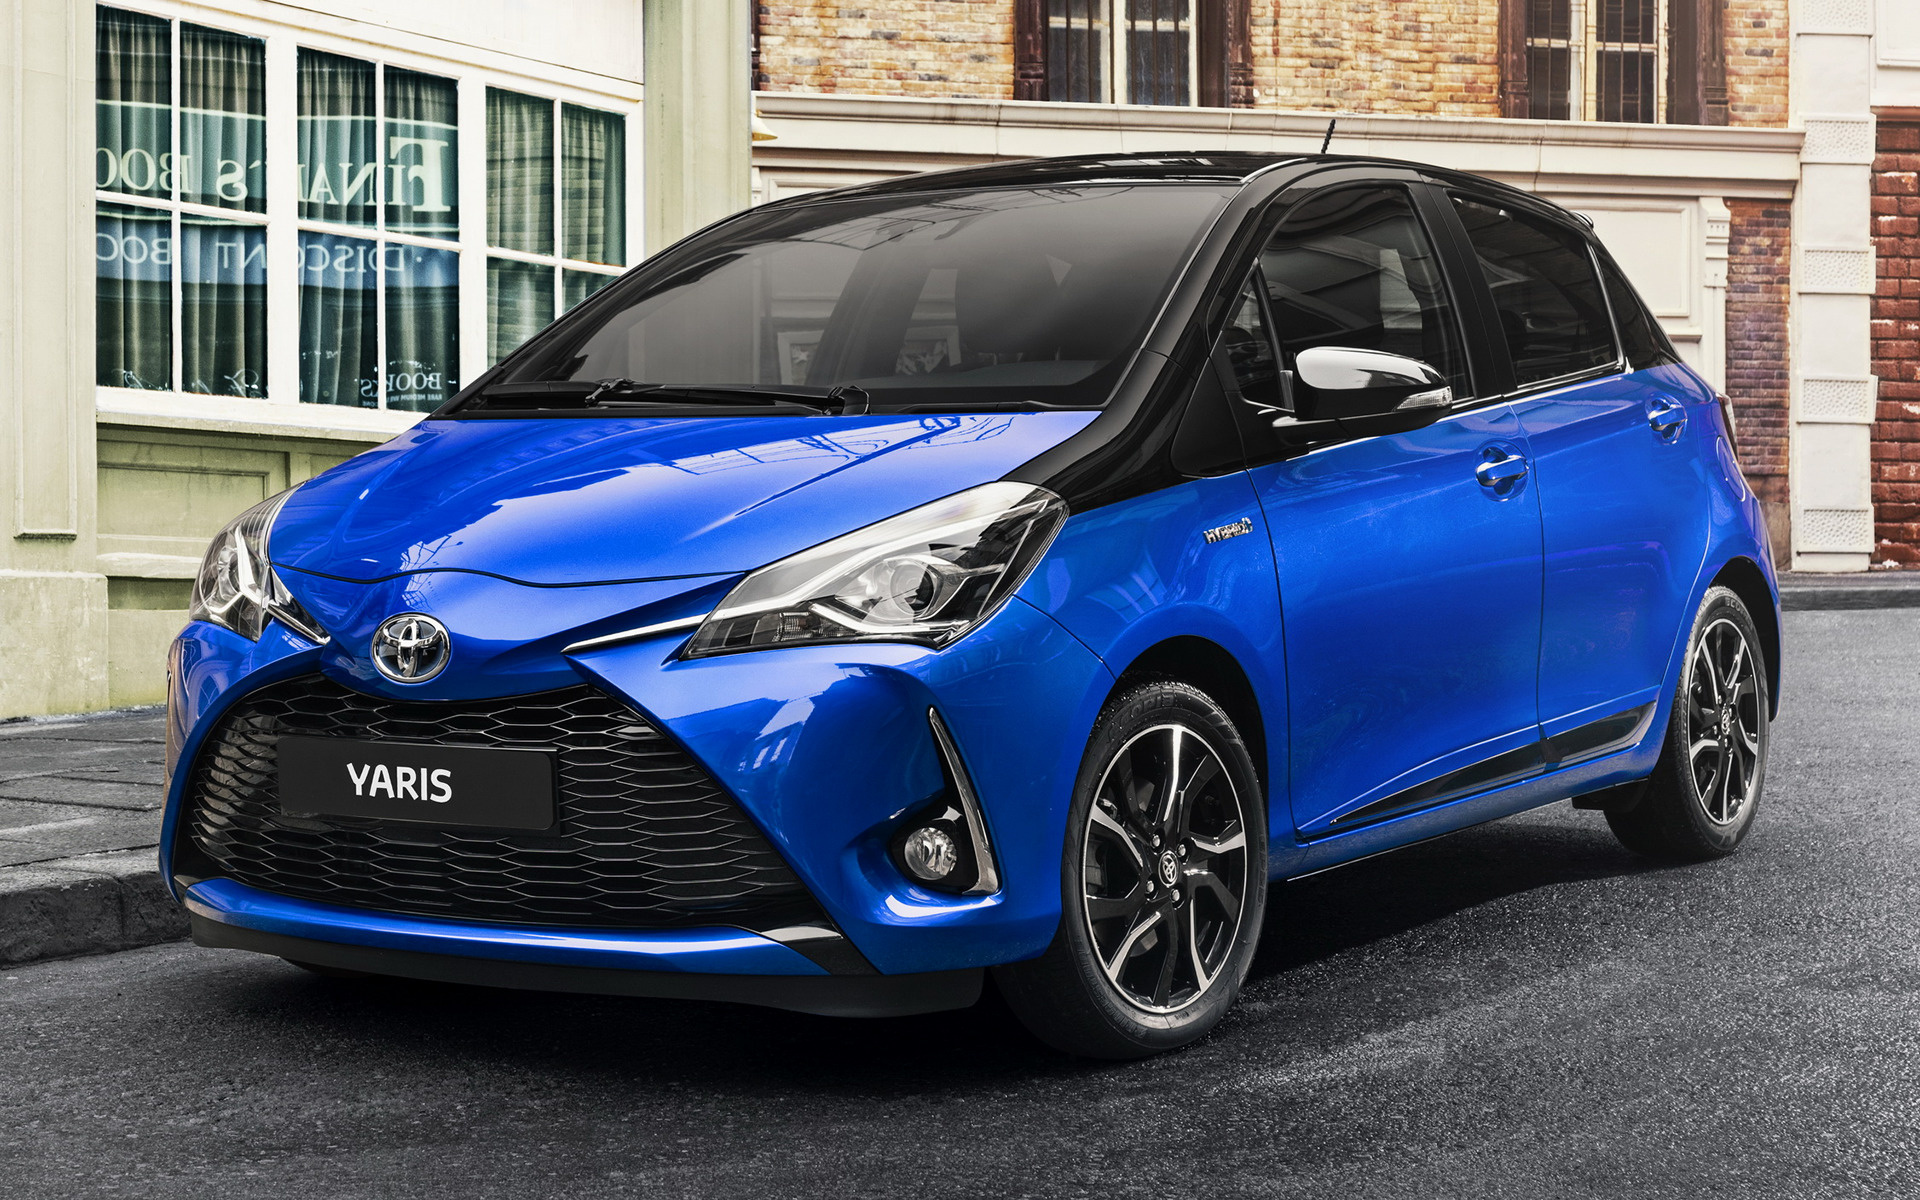 toyota yaris hybrid 5 door 2017 wallpapers and hd images. Black Bedroom Furniture Sets. Home Design Ideas